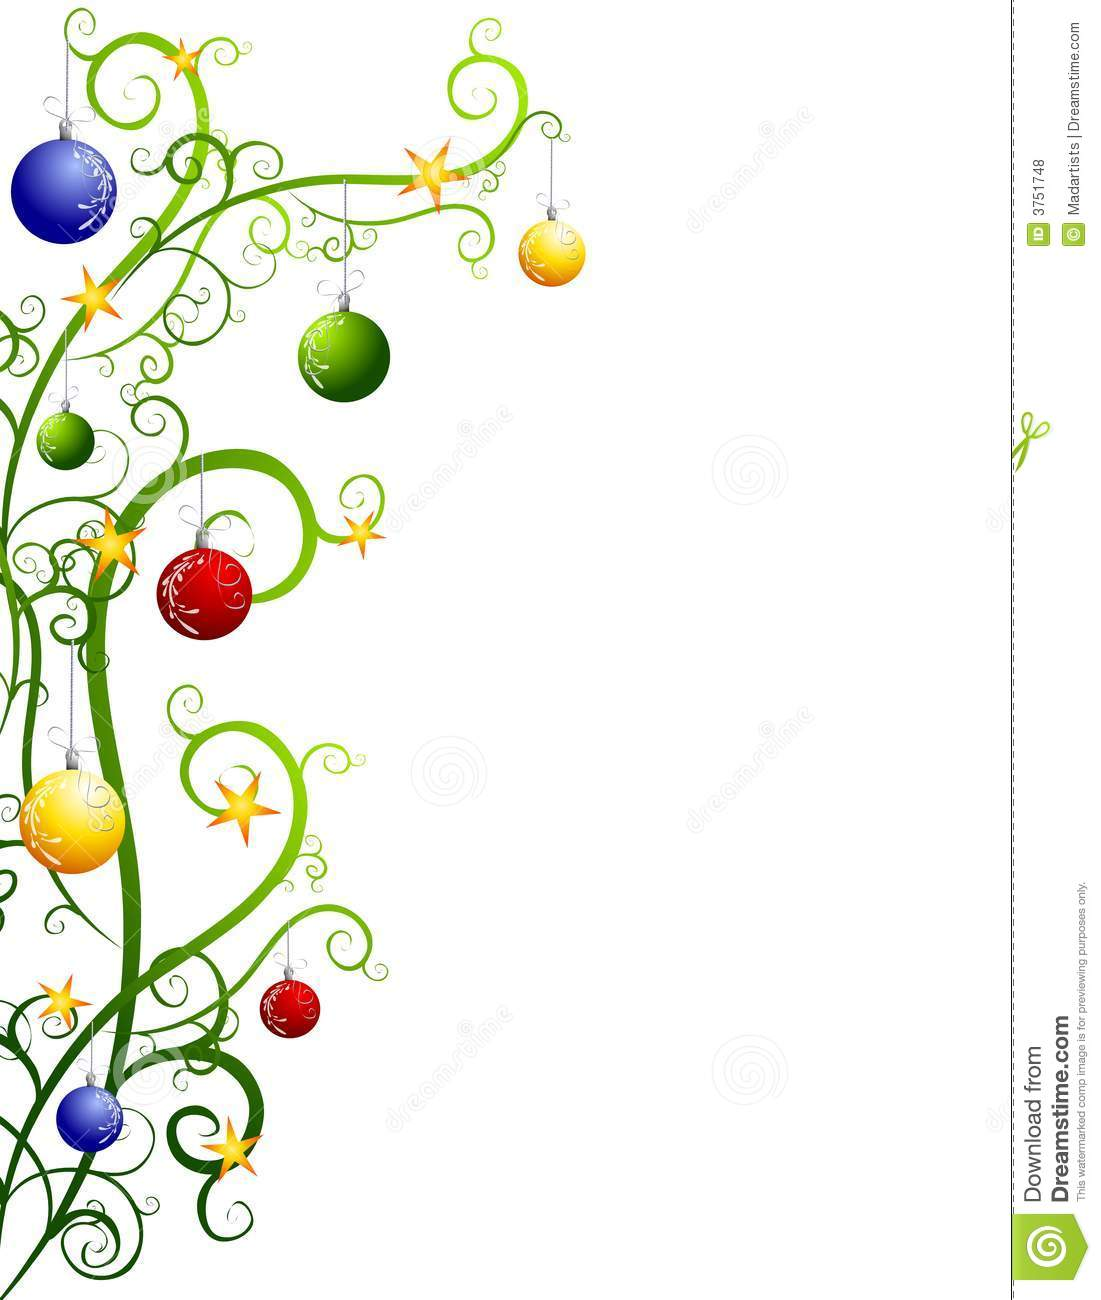 ... tree with swirling branches and hanging ornaments for use as a border